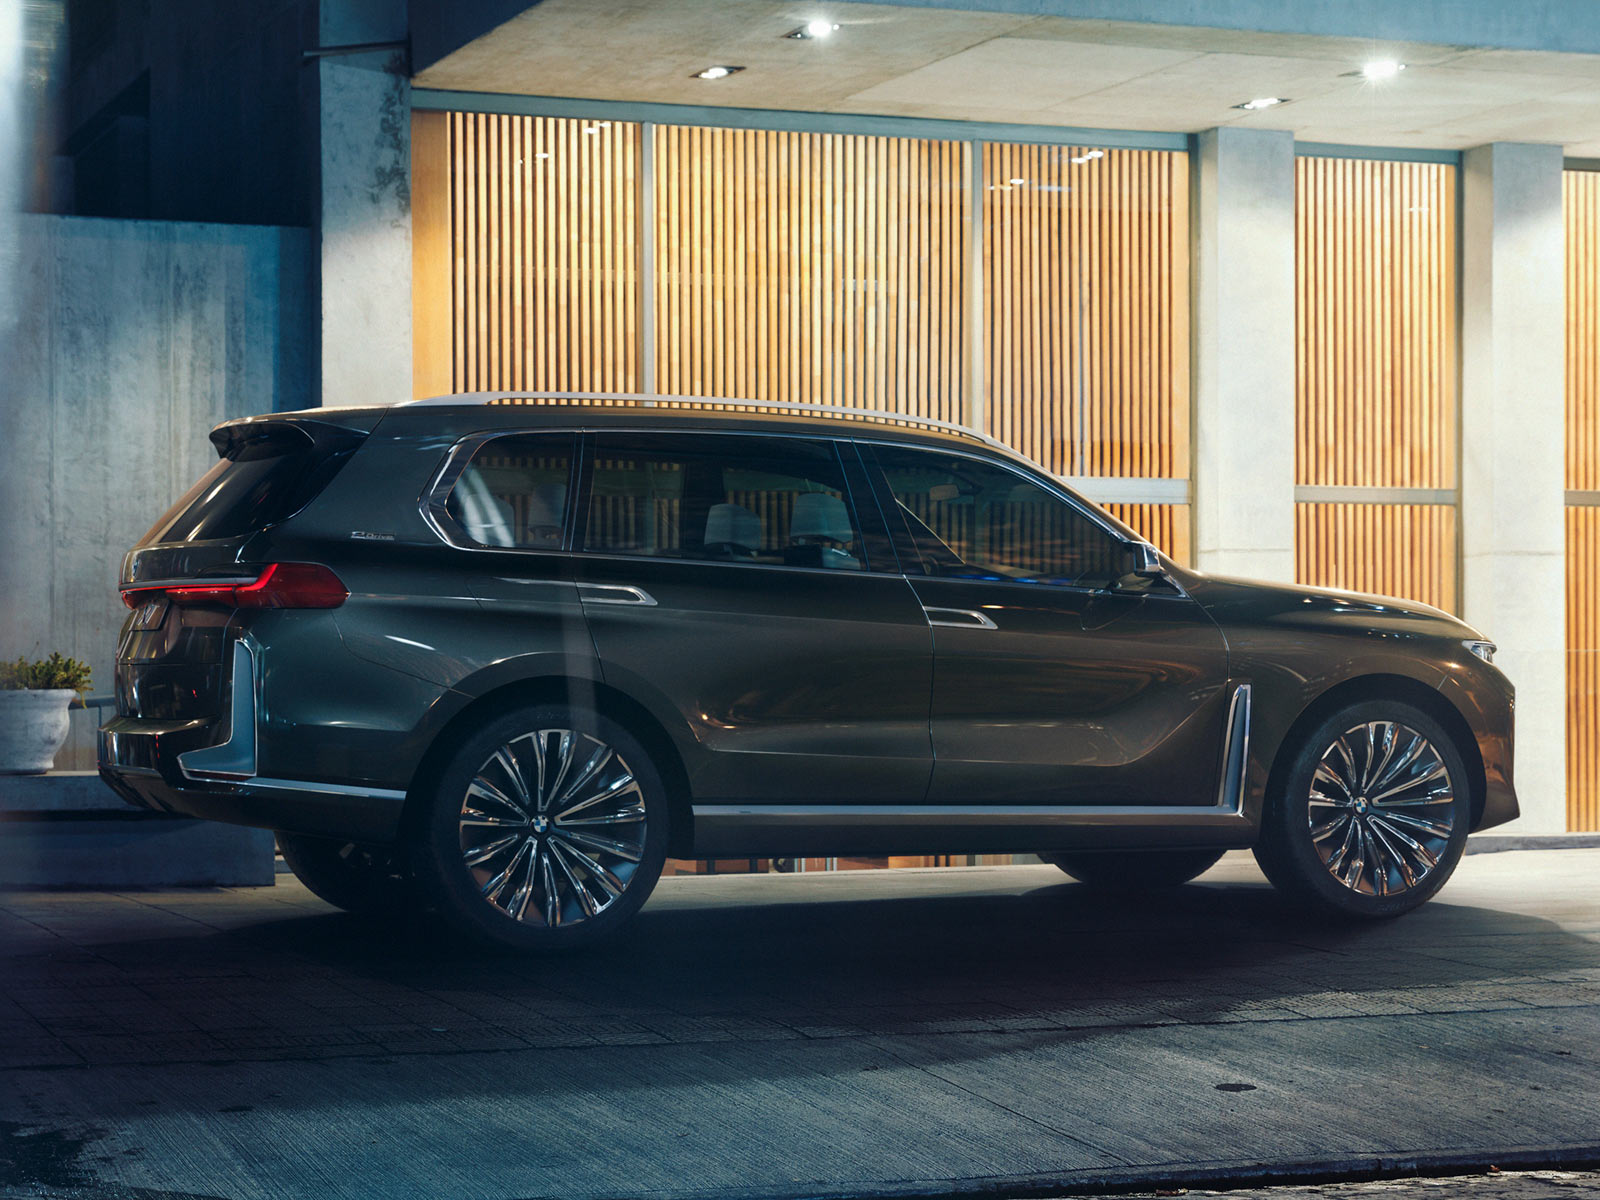 new bmw x7 iperformance concept this is it carscoops. Black Bedroom Furniture Sets. Home Design Ideas